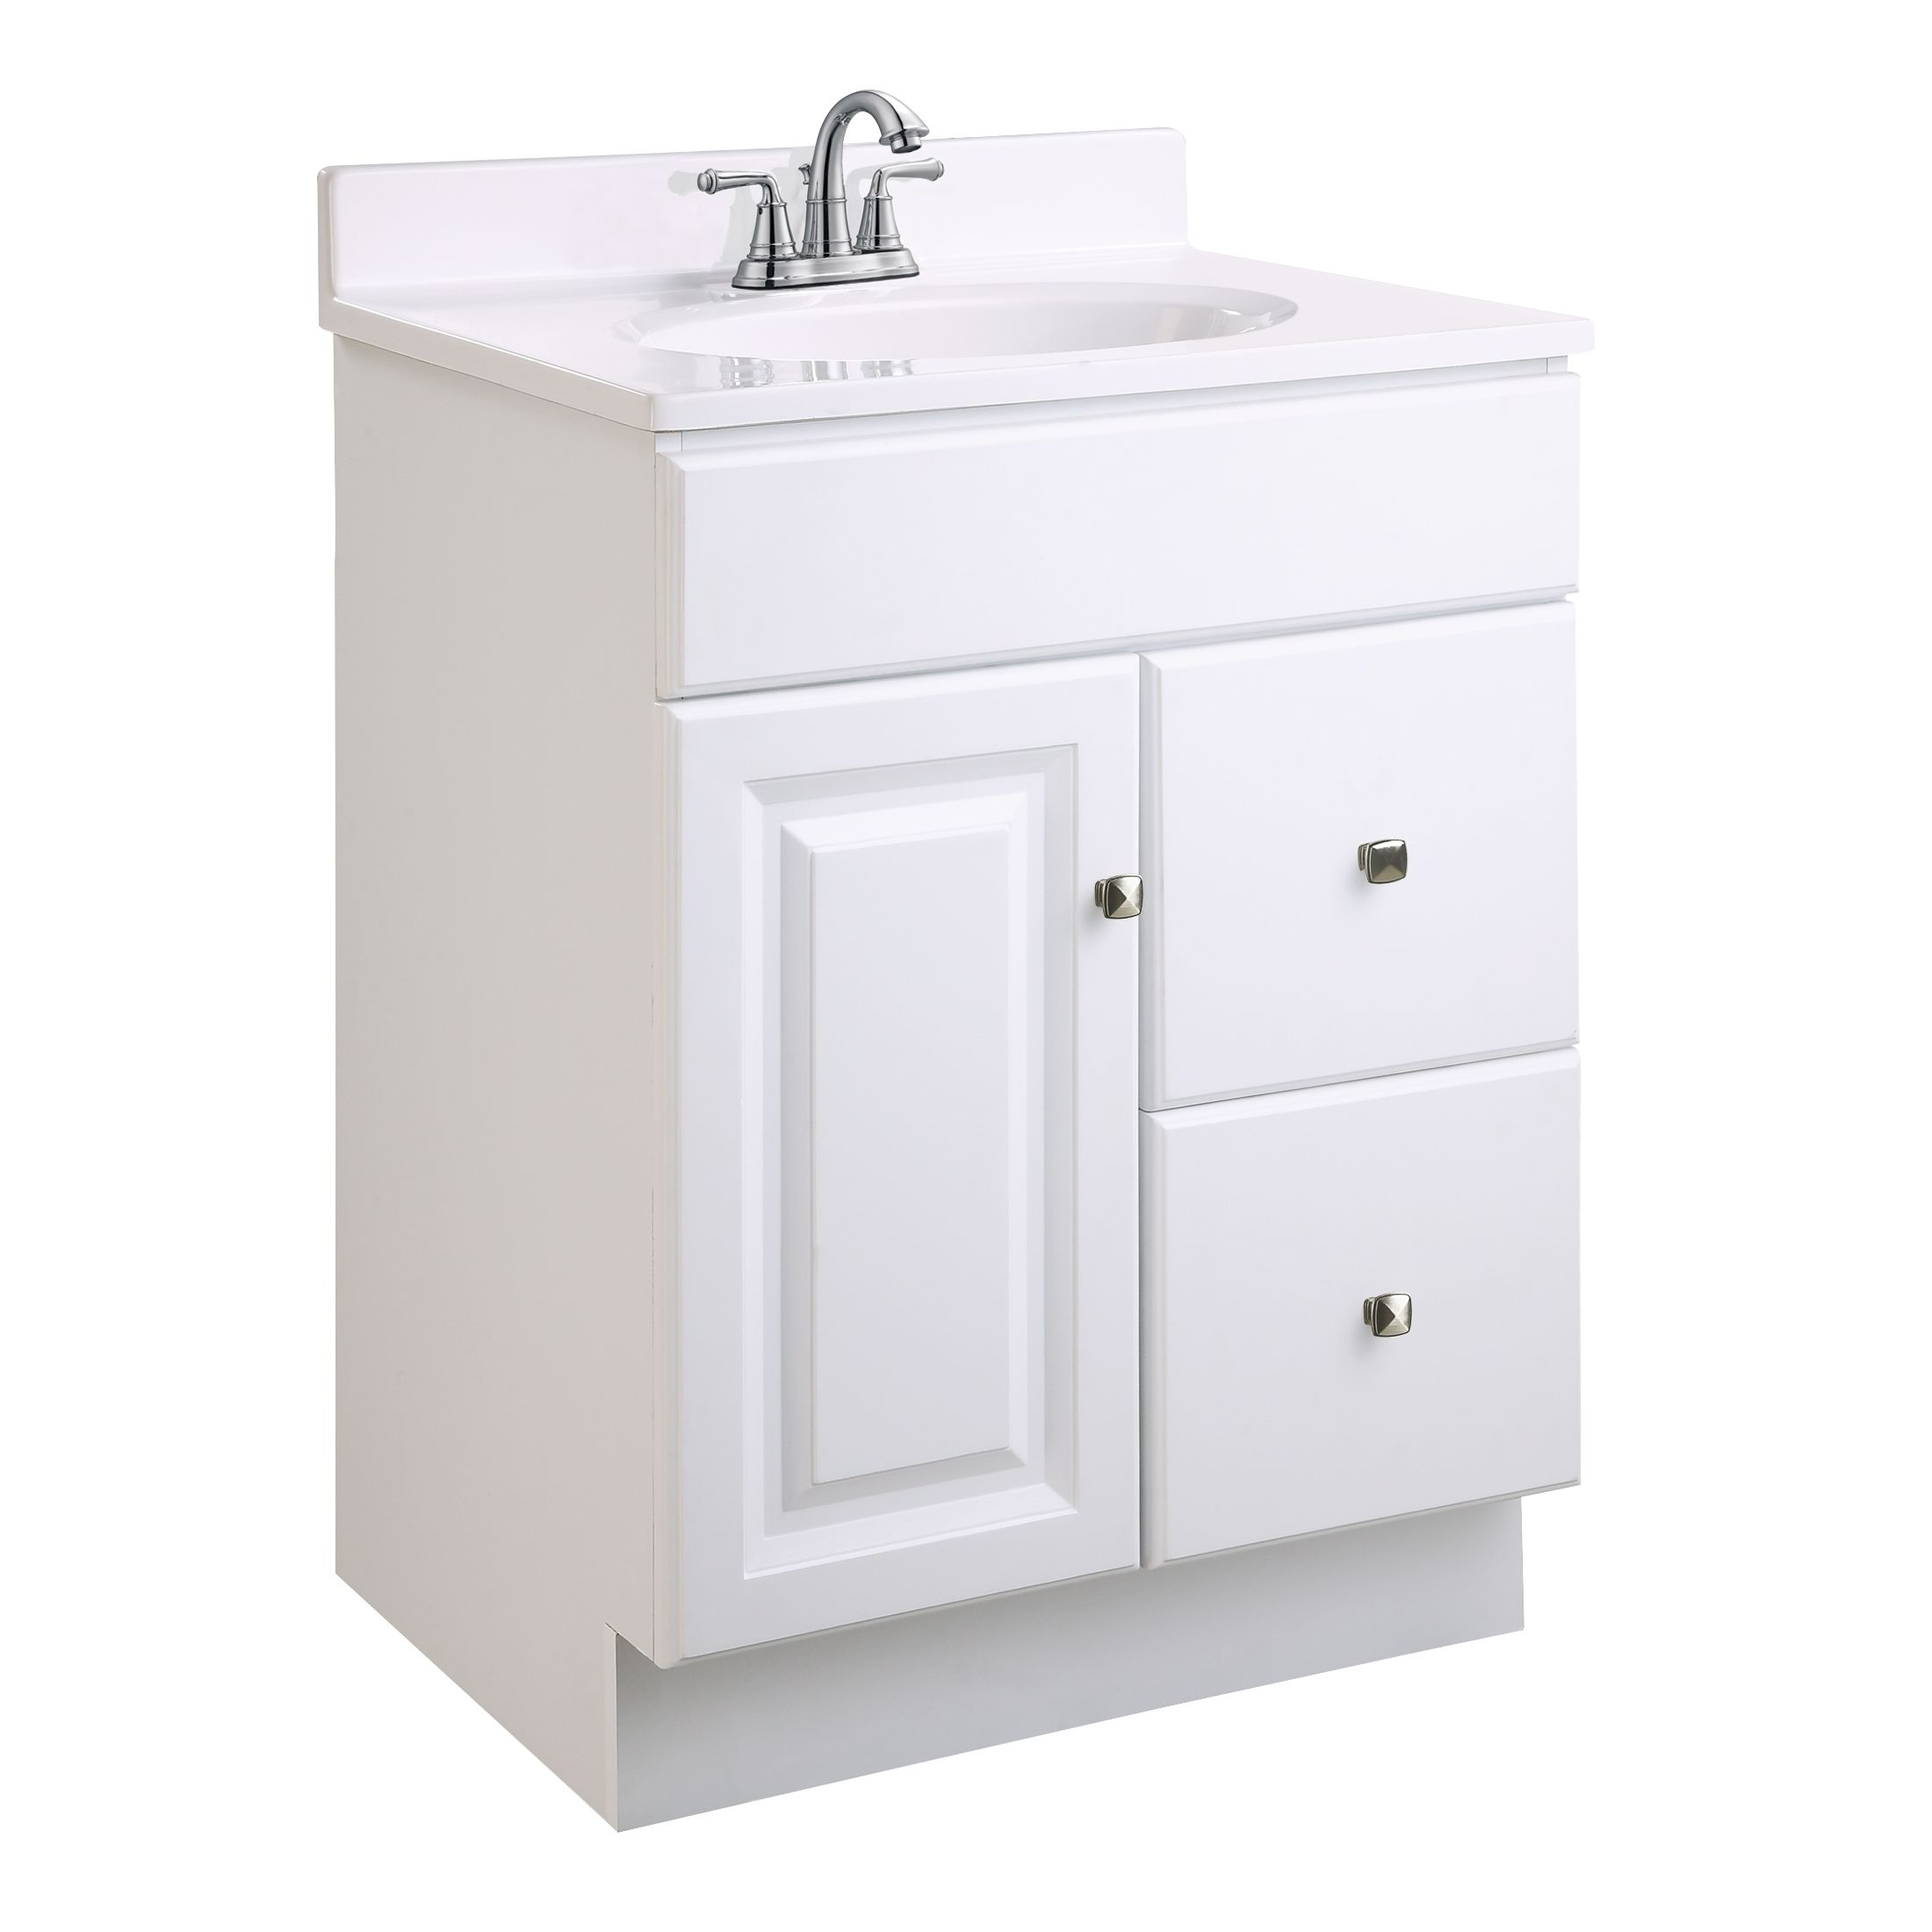 "Wyndham Vanity with 1-Door and 2-Drawers 24"", White #545004"